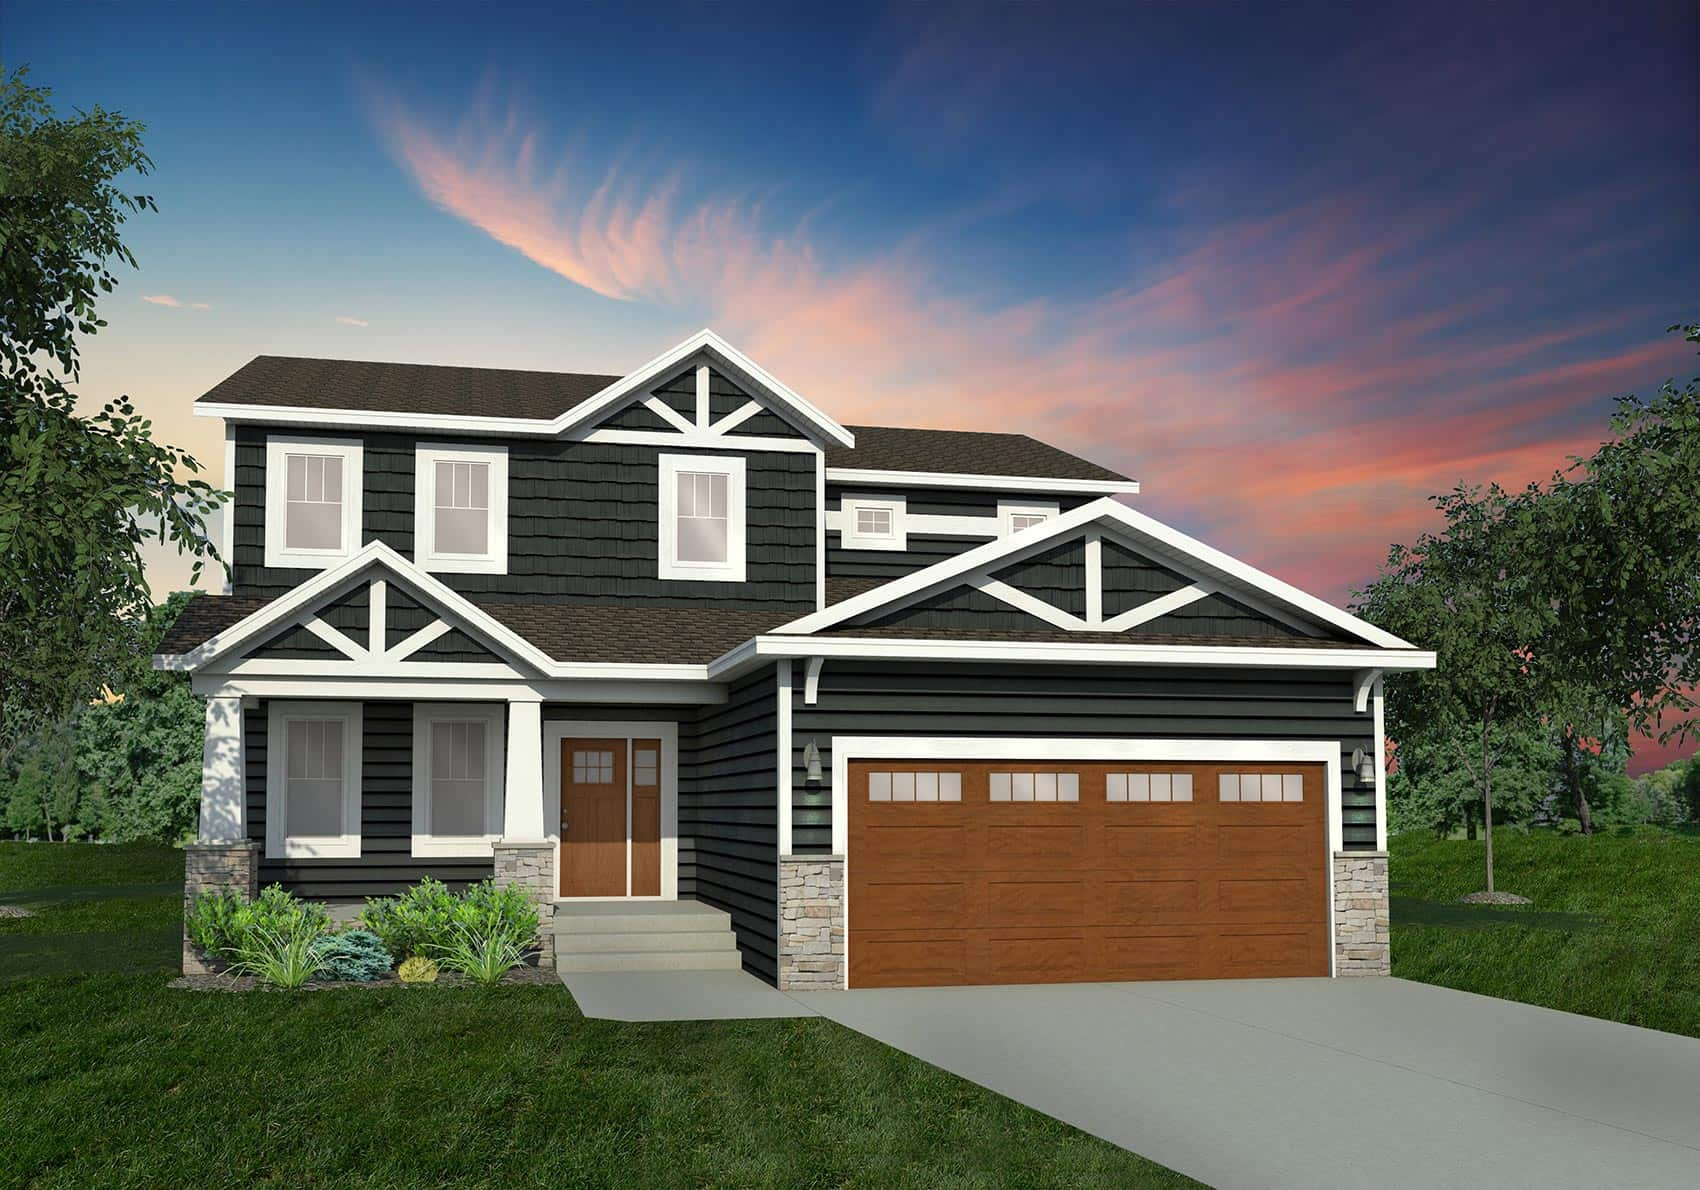 2090 Craftsman Elevation